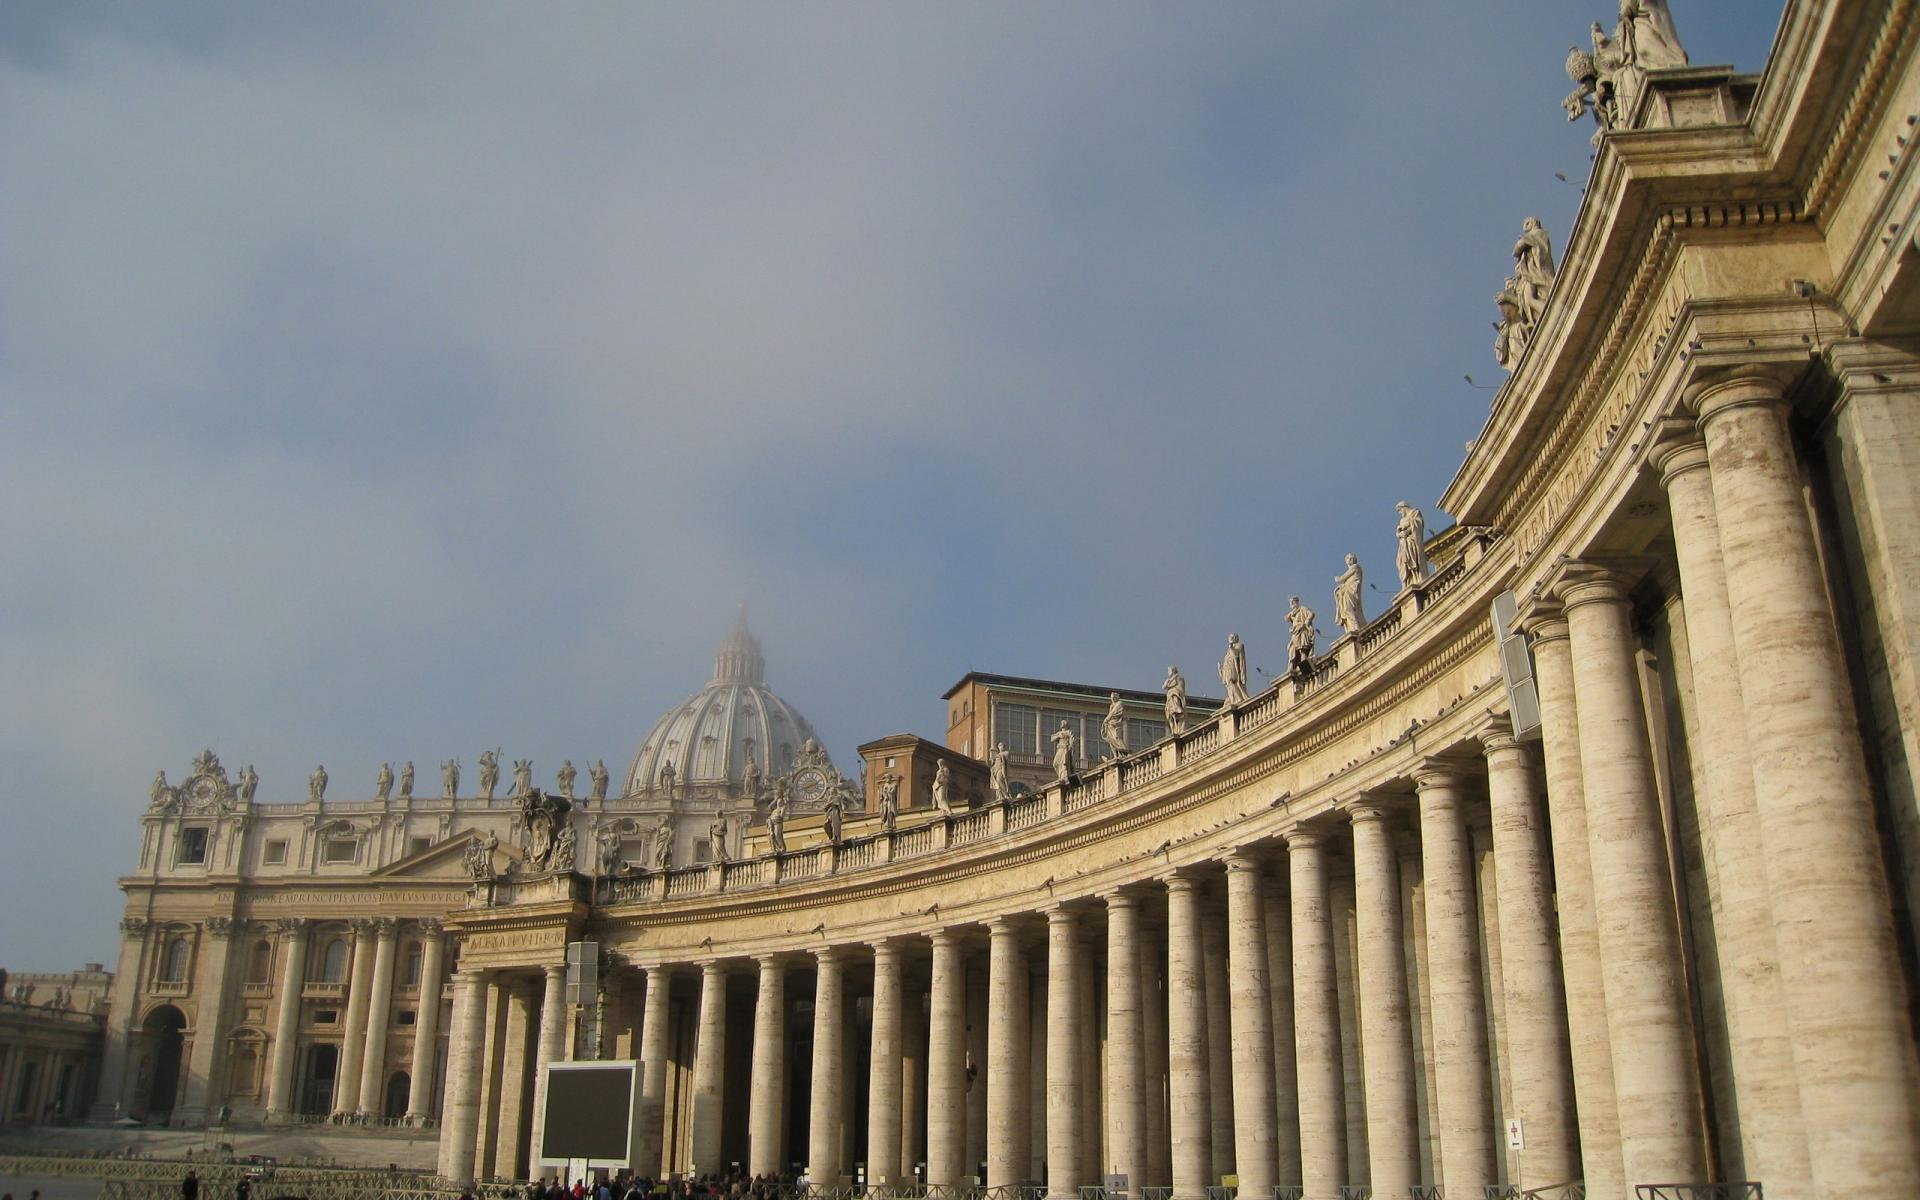 Vatican City 8 HD Image